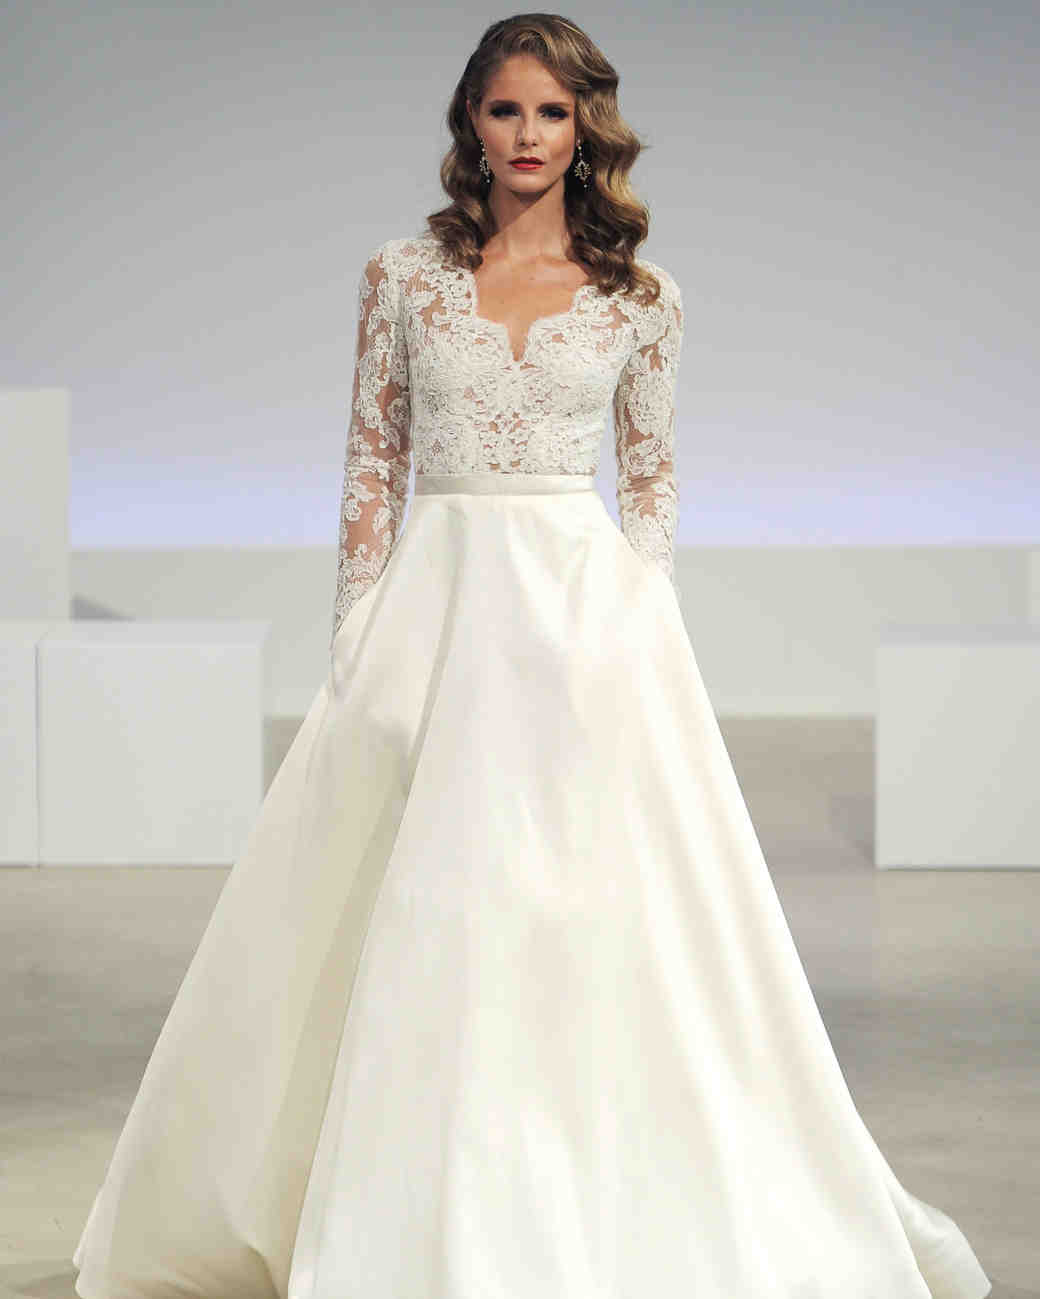 a-line wedding dresses with pockets and sleeves